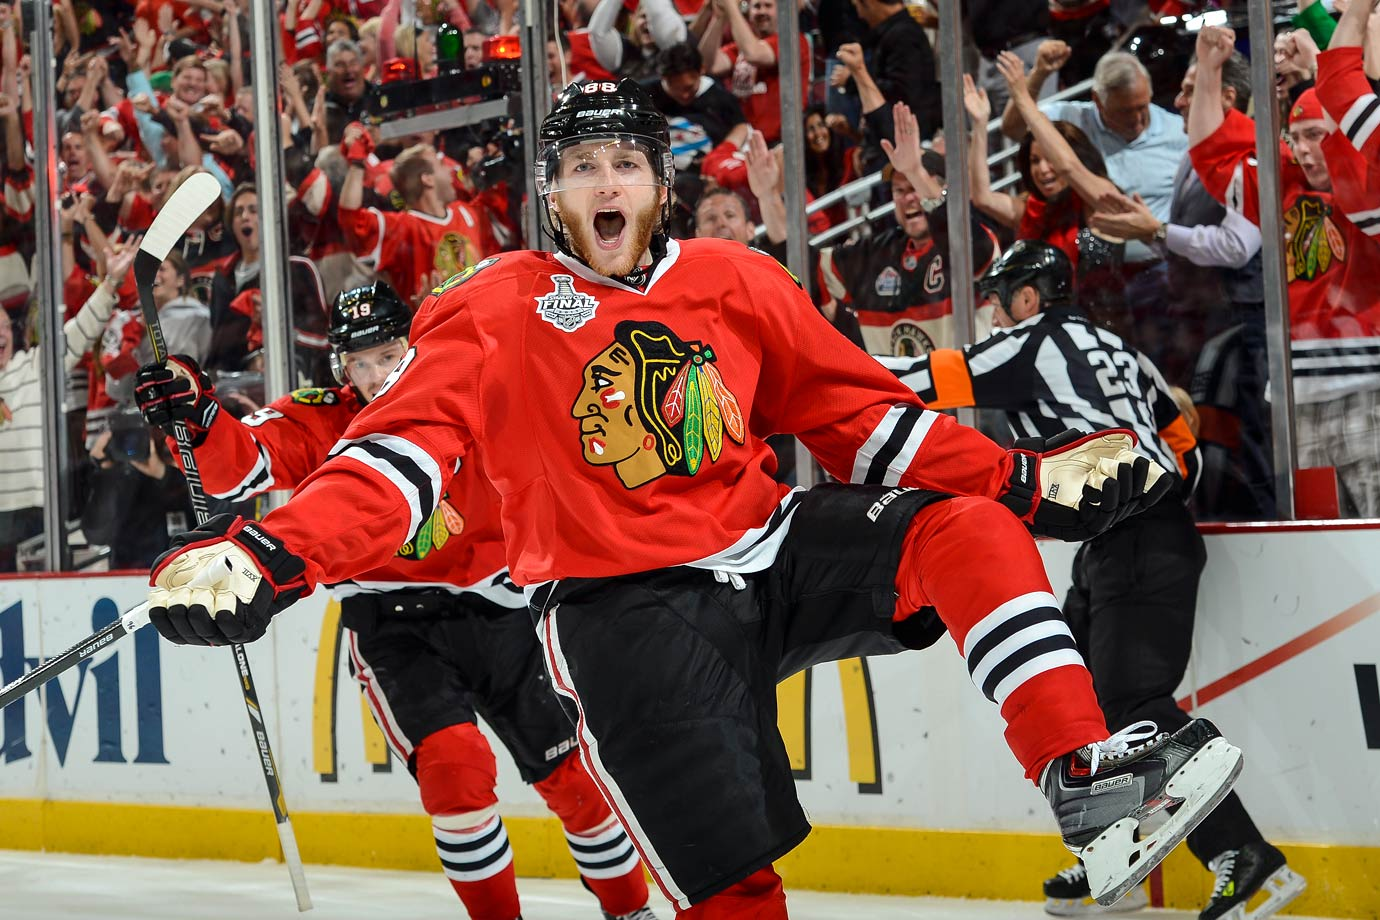 The 2007-08 Rookie of the Year and 2013 Playoff MVP, Patrick Kane helped bring three Stanley Cups to Chicago. The No. 1 overall pick in the 2007 NHL Draft, Kane is a five-time All-Star while averaging a point per game through nine NHL seasons.